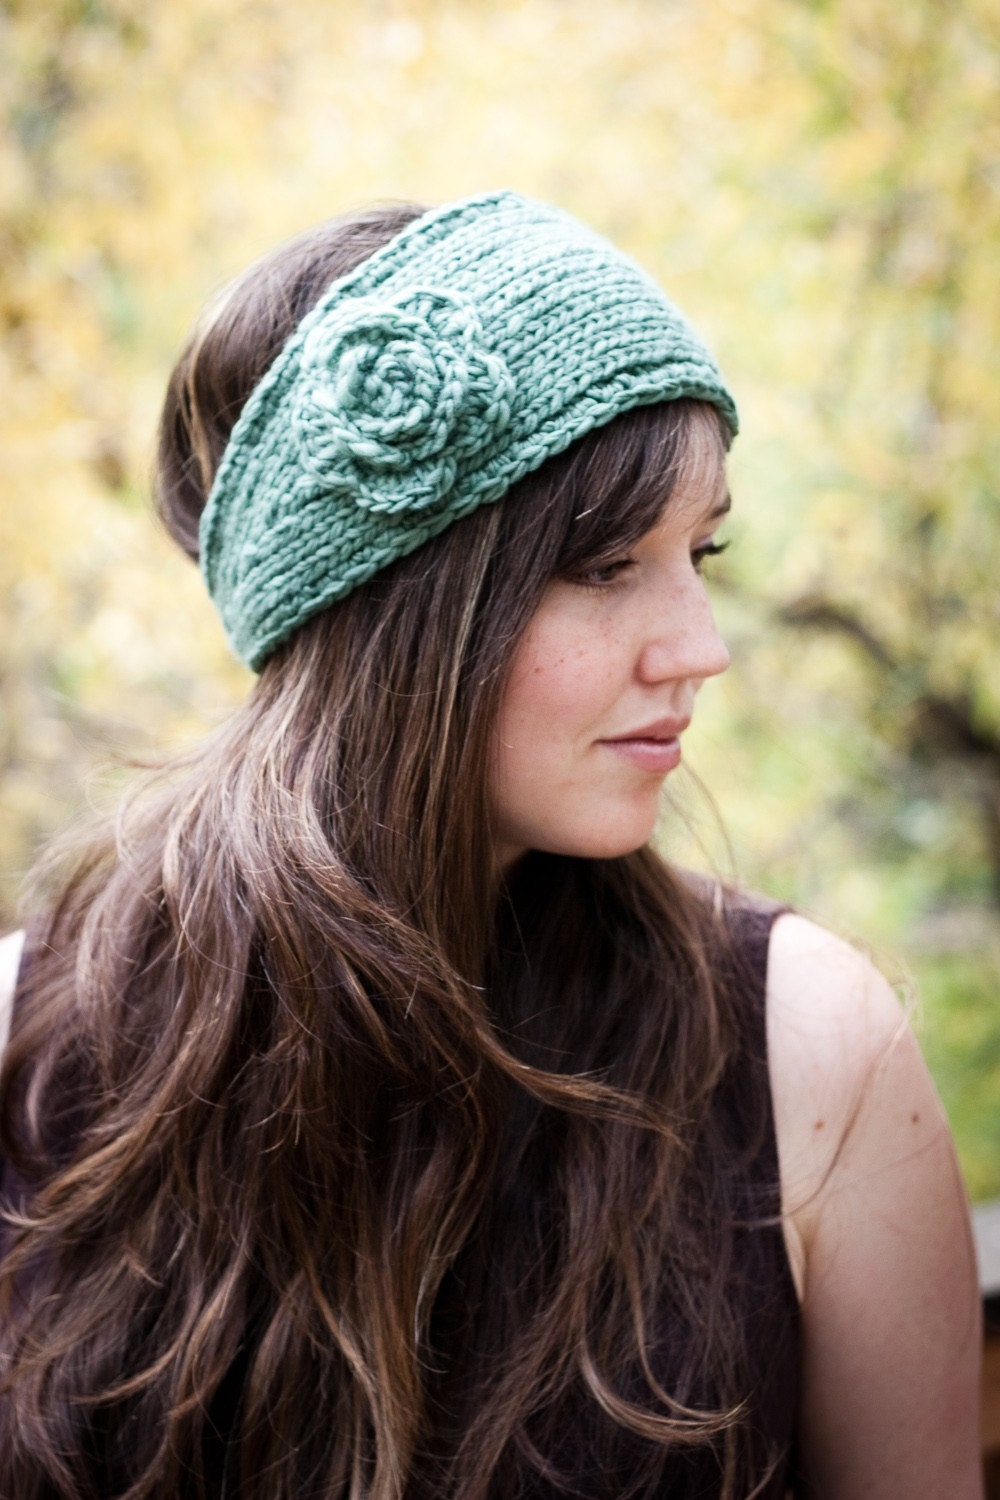 Knitting Pattern For A Headband With Flower : PATTERN Flower Headband Earwarmer Knit and Crochet Pattern